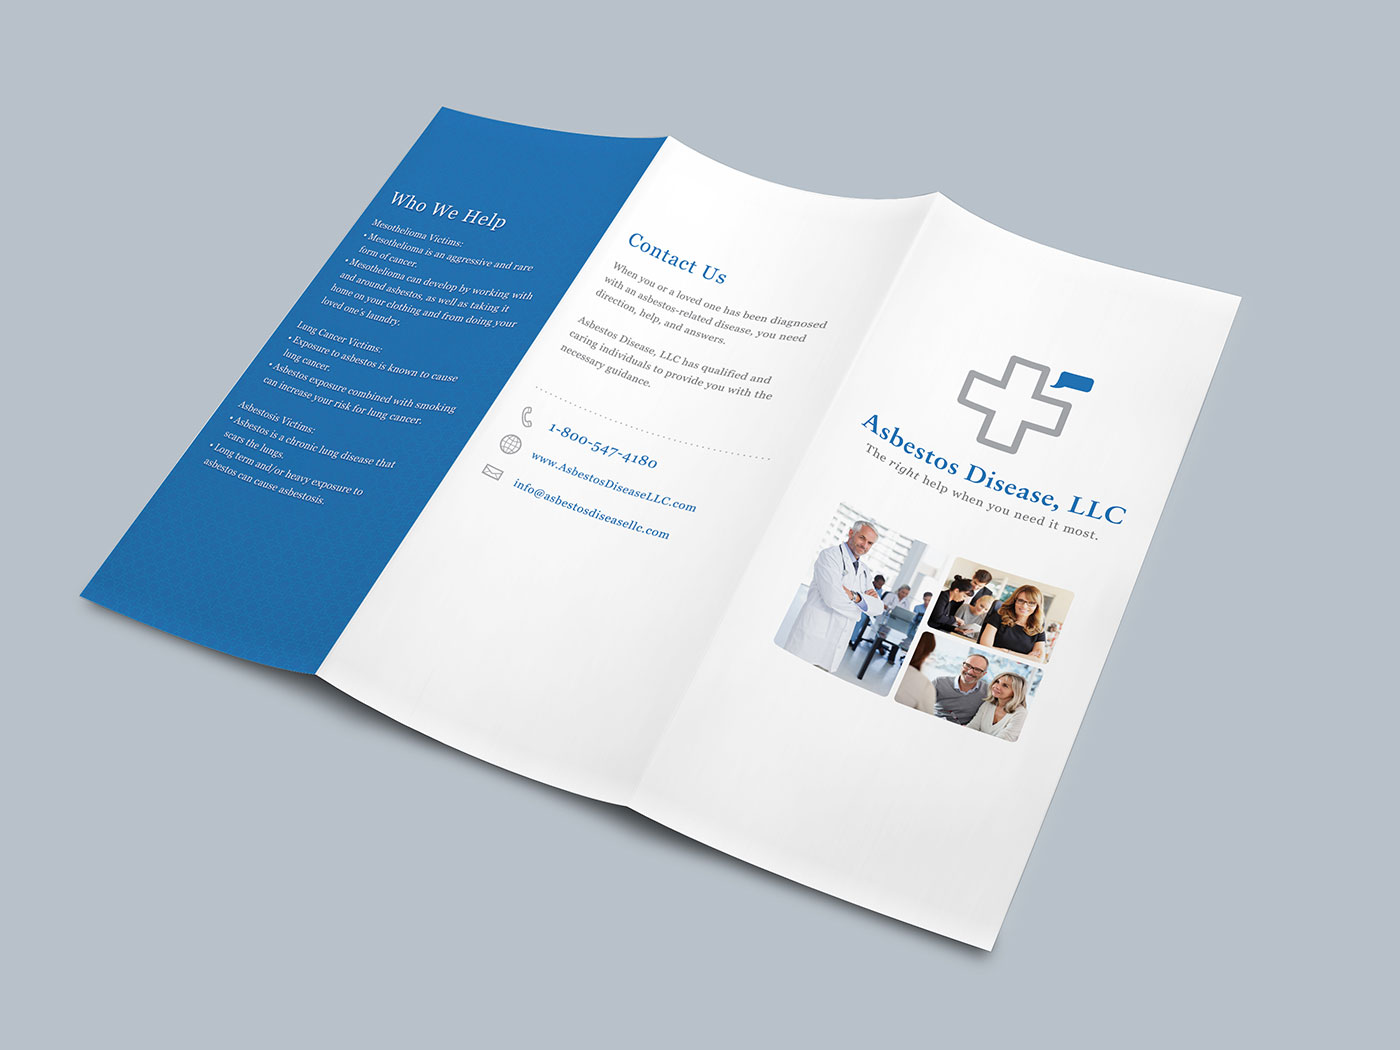 Asbestos Disease, LLC - Brochure